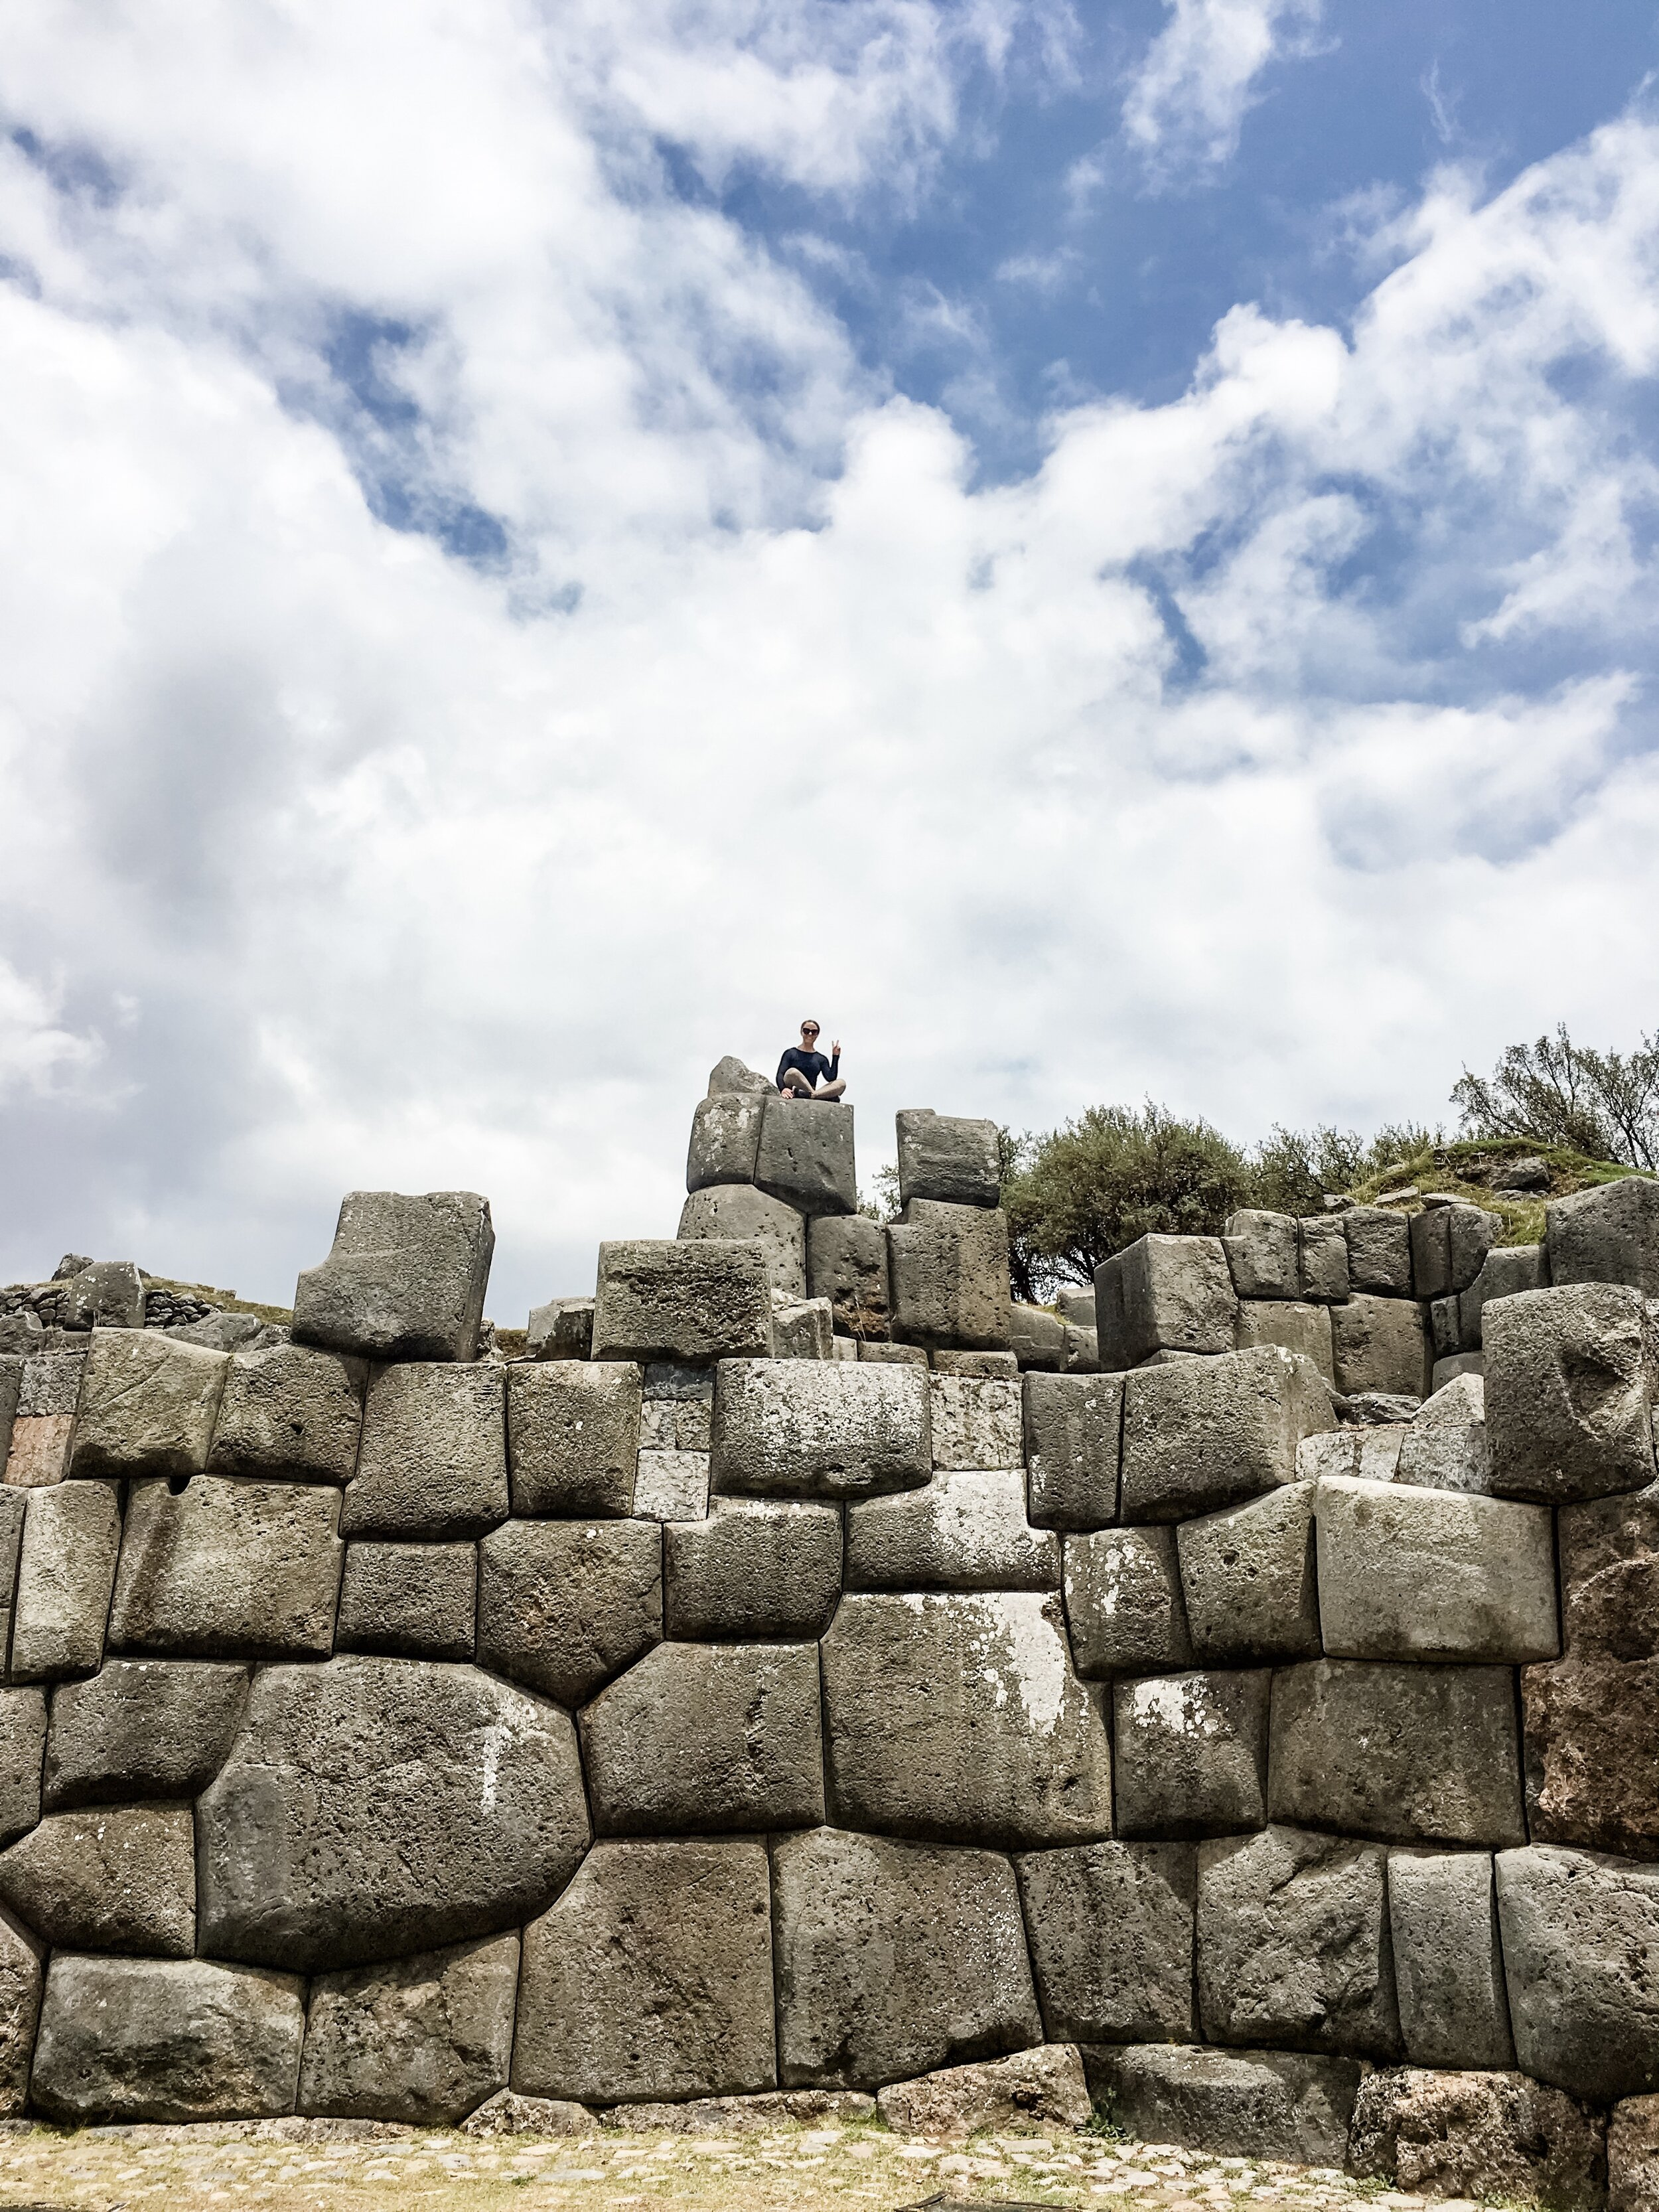 Saqsaywaman Ruins: Paige for Scale